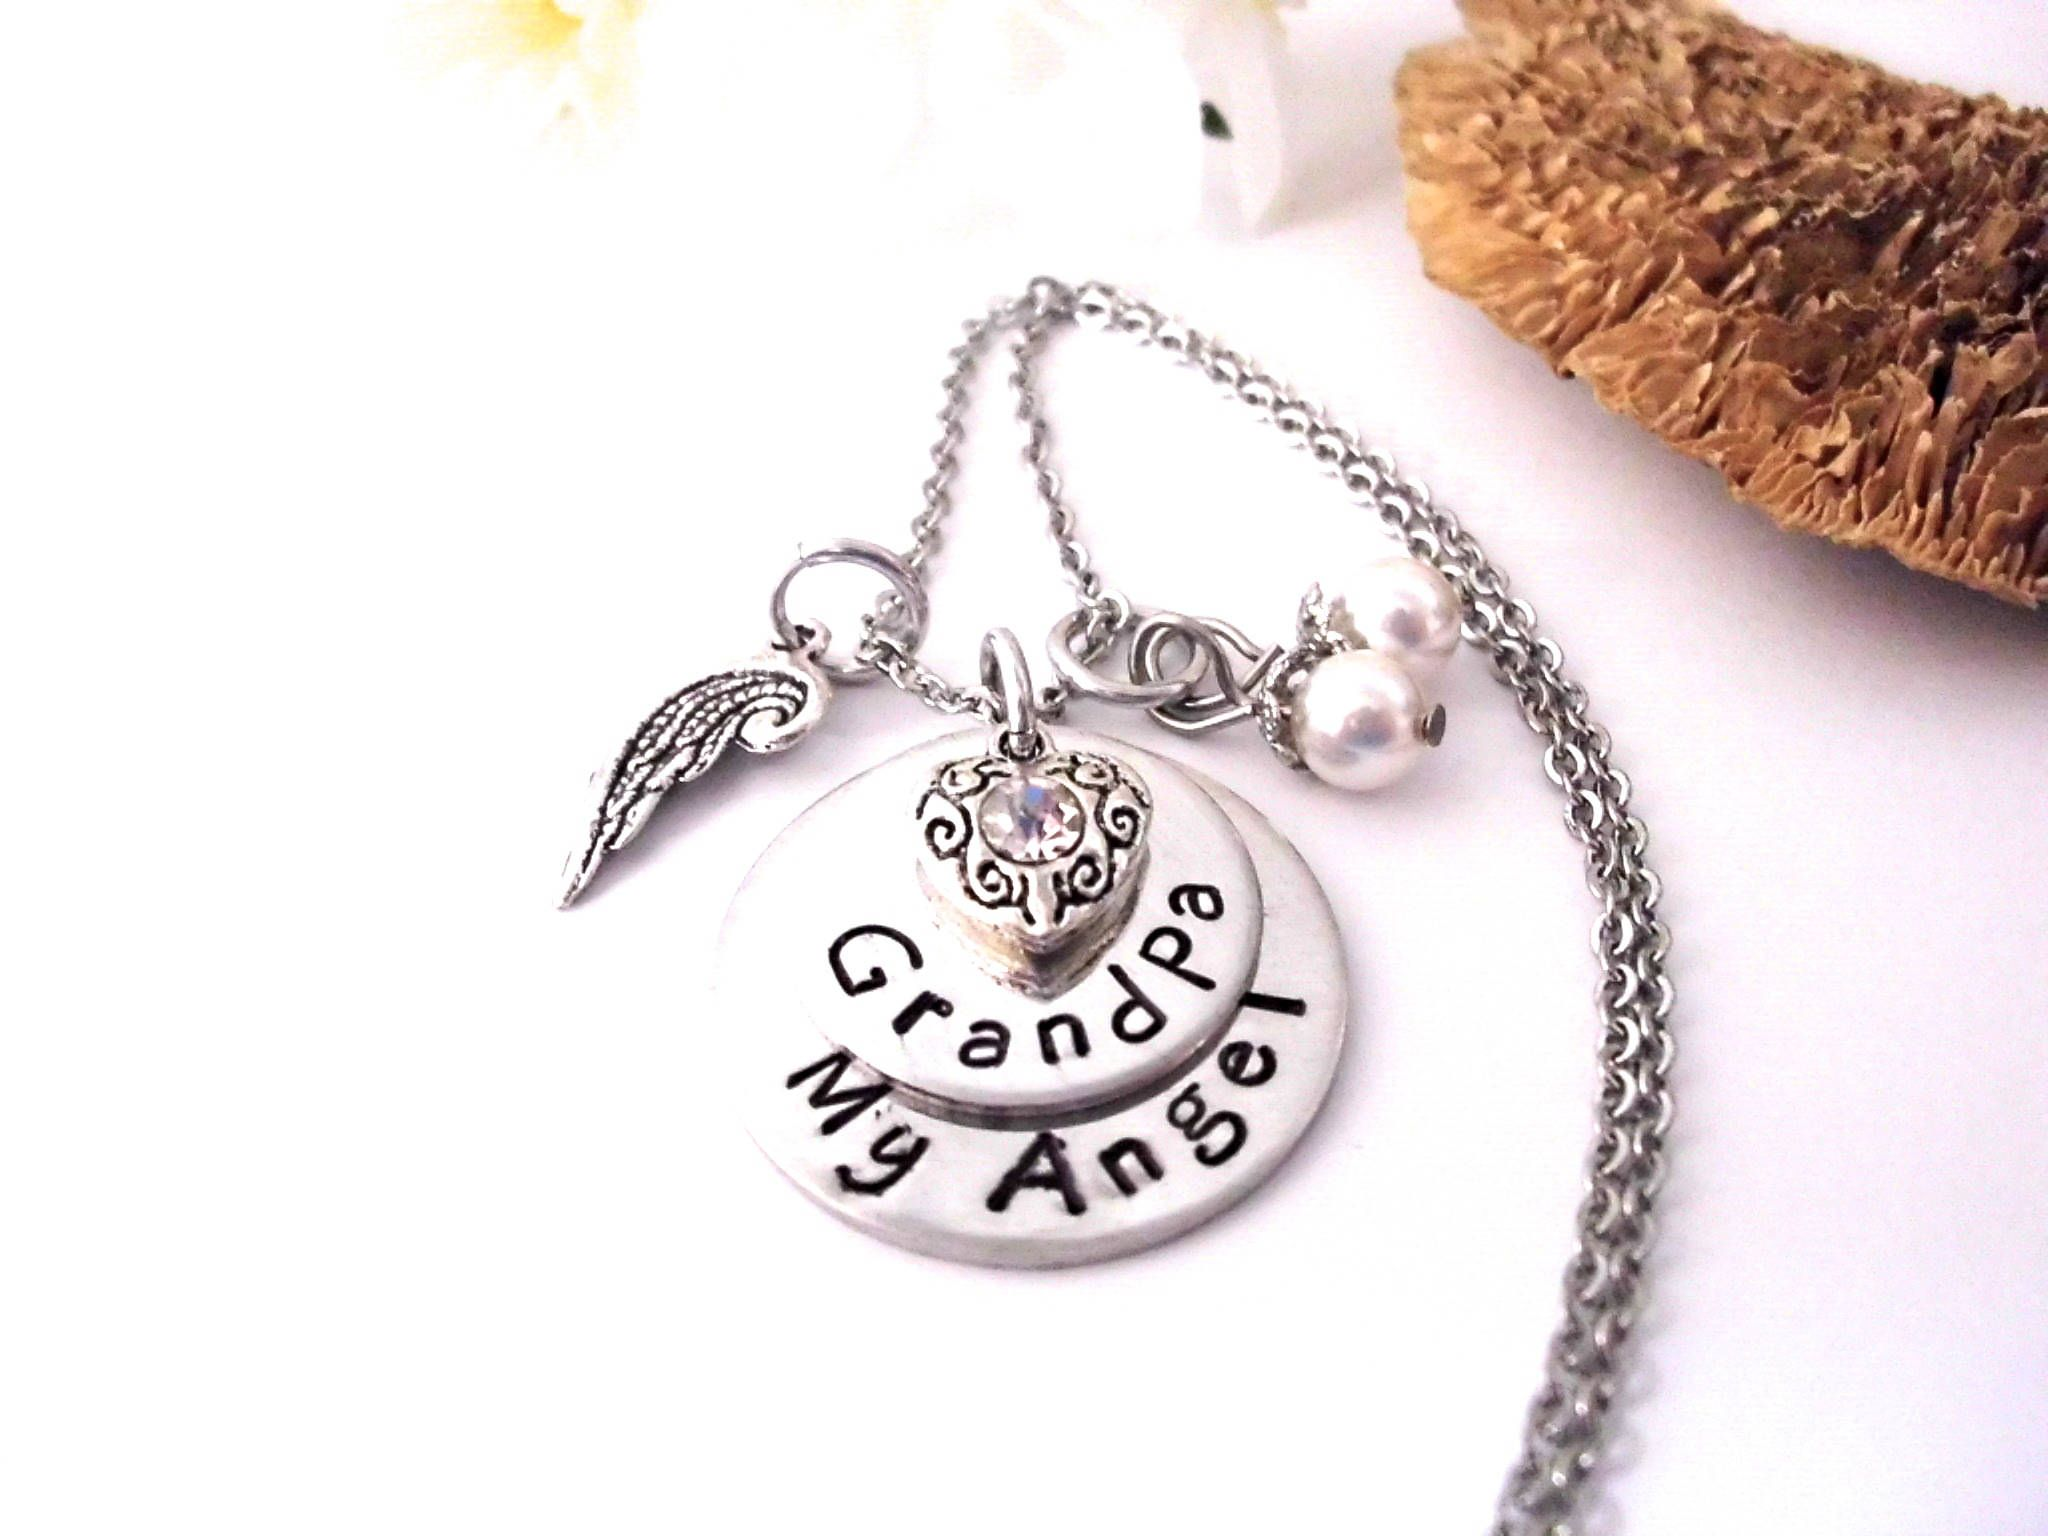 urn memorial com cremation jewelry amist keepsake necklace you dp birthstone by amazon april with angel in wing god arms crystal has charm his